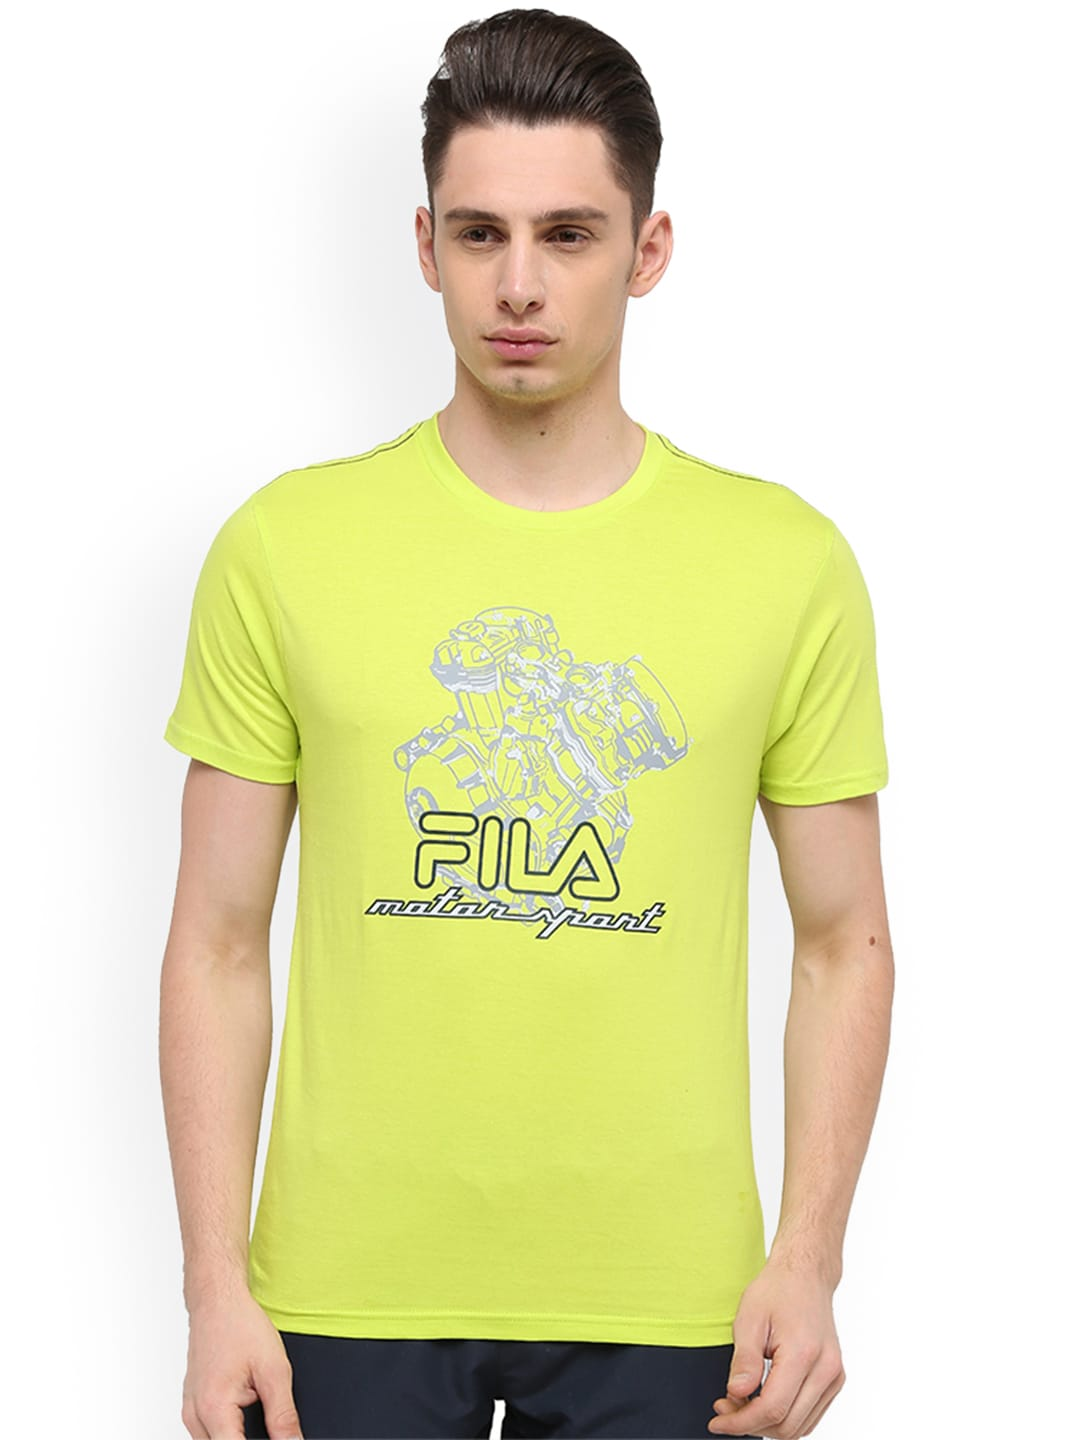 175bb7d635f Fila - Exclusive Fila Online Store in India at Myntra